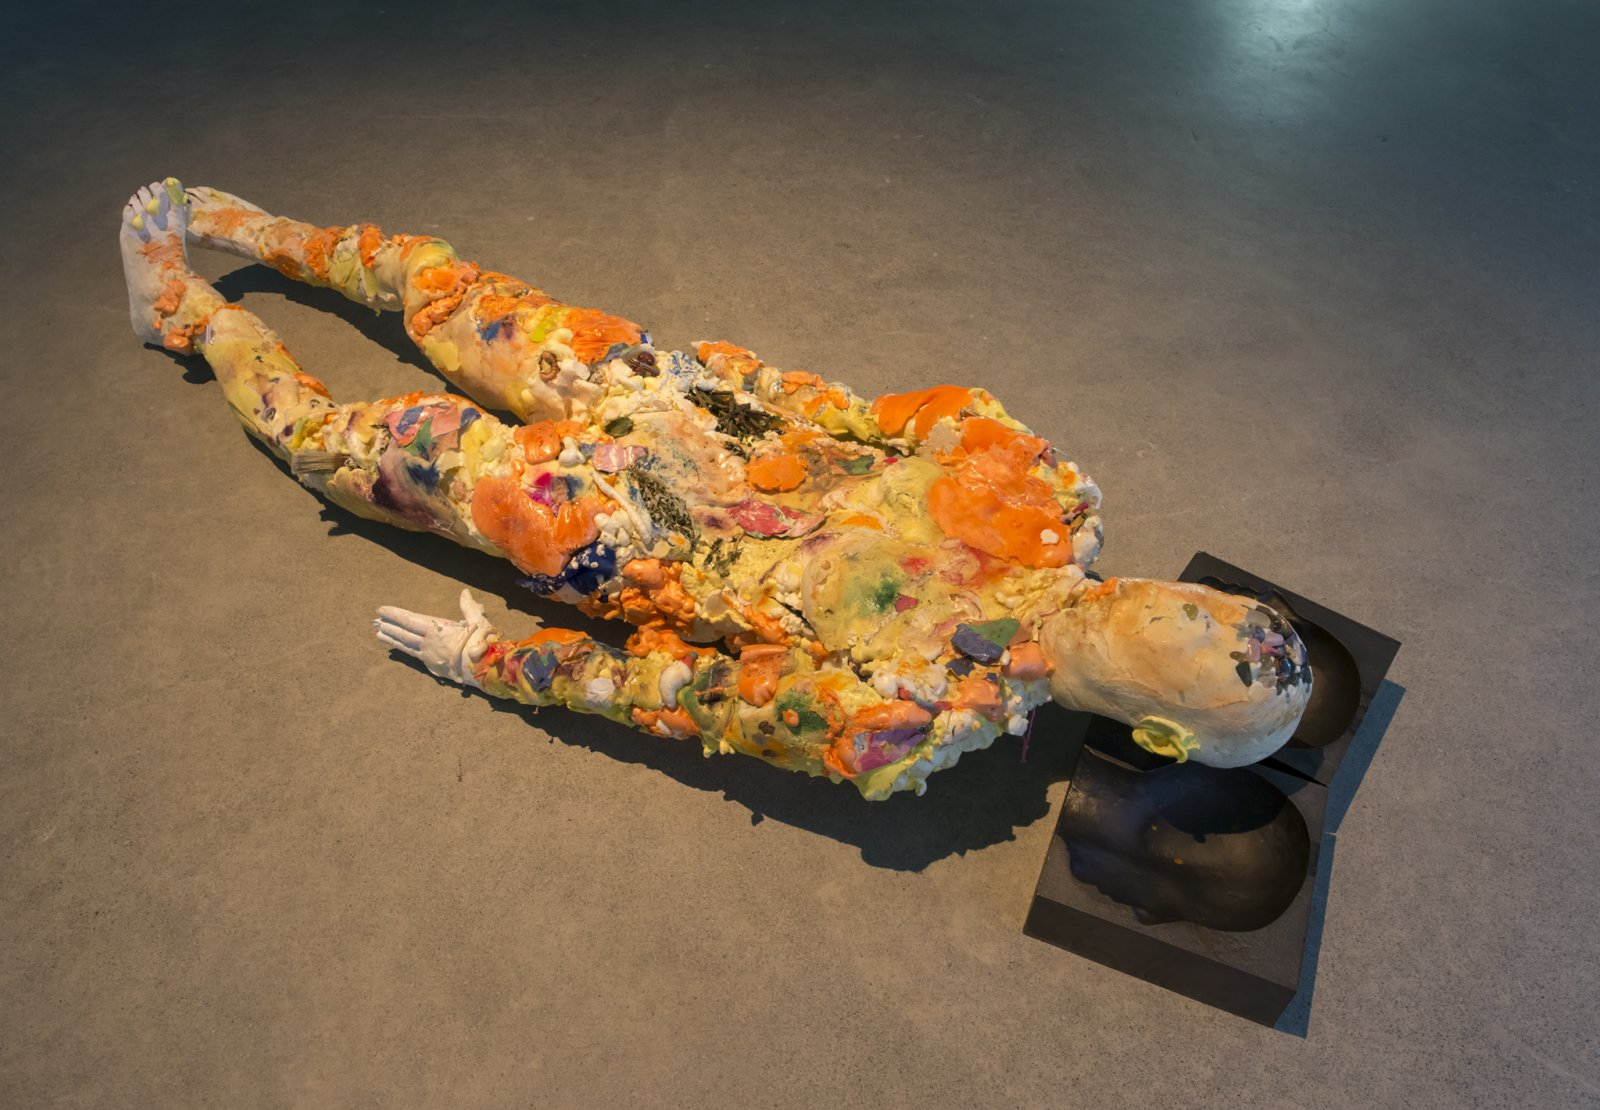 Julia Feyrer, Corpse, Maiden, 2018, insulation foam, whistle, glass marbles, mineral rocks, broken rulers, coins, lenses, blackberry, mugwort, rope, hinges, gummy worms, plaster cast hands and feet, soil, aluminum armature, latex, pigment, paper, cast iron, miscellaneous materials, 71 x 28 x 13 in. (180 x 71 x 33 cm)